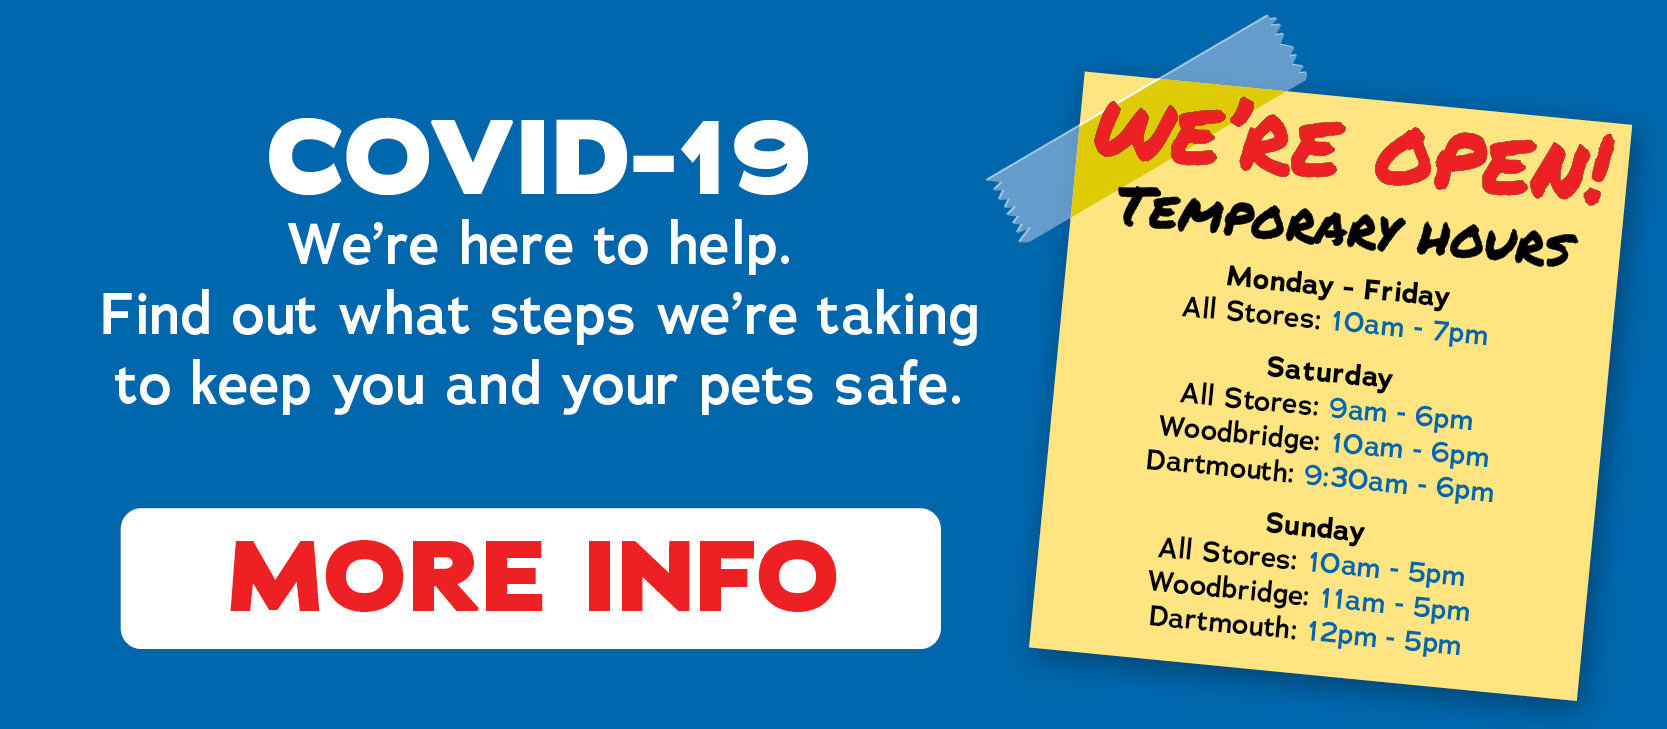 We're open! Find out what steps we're taking to keep you and your pets safe.